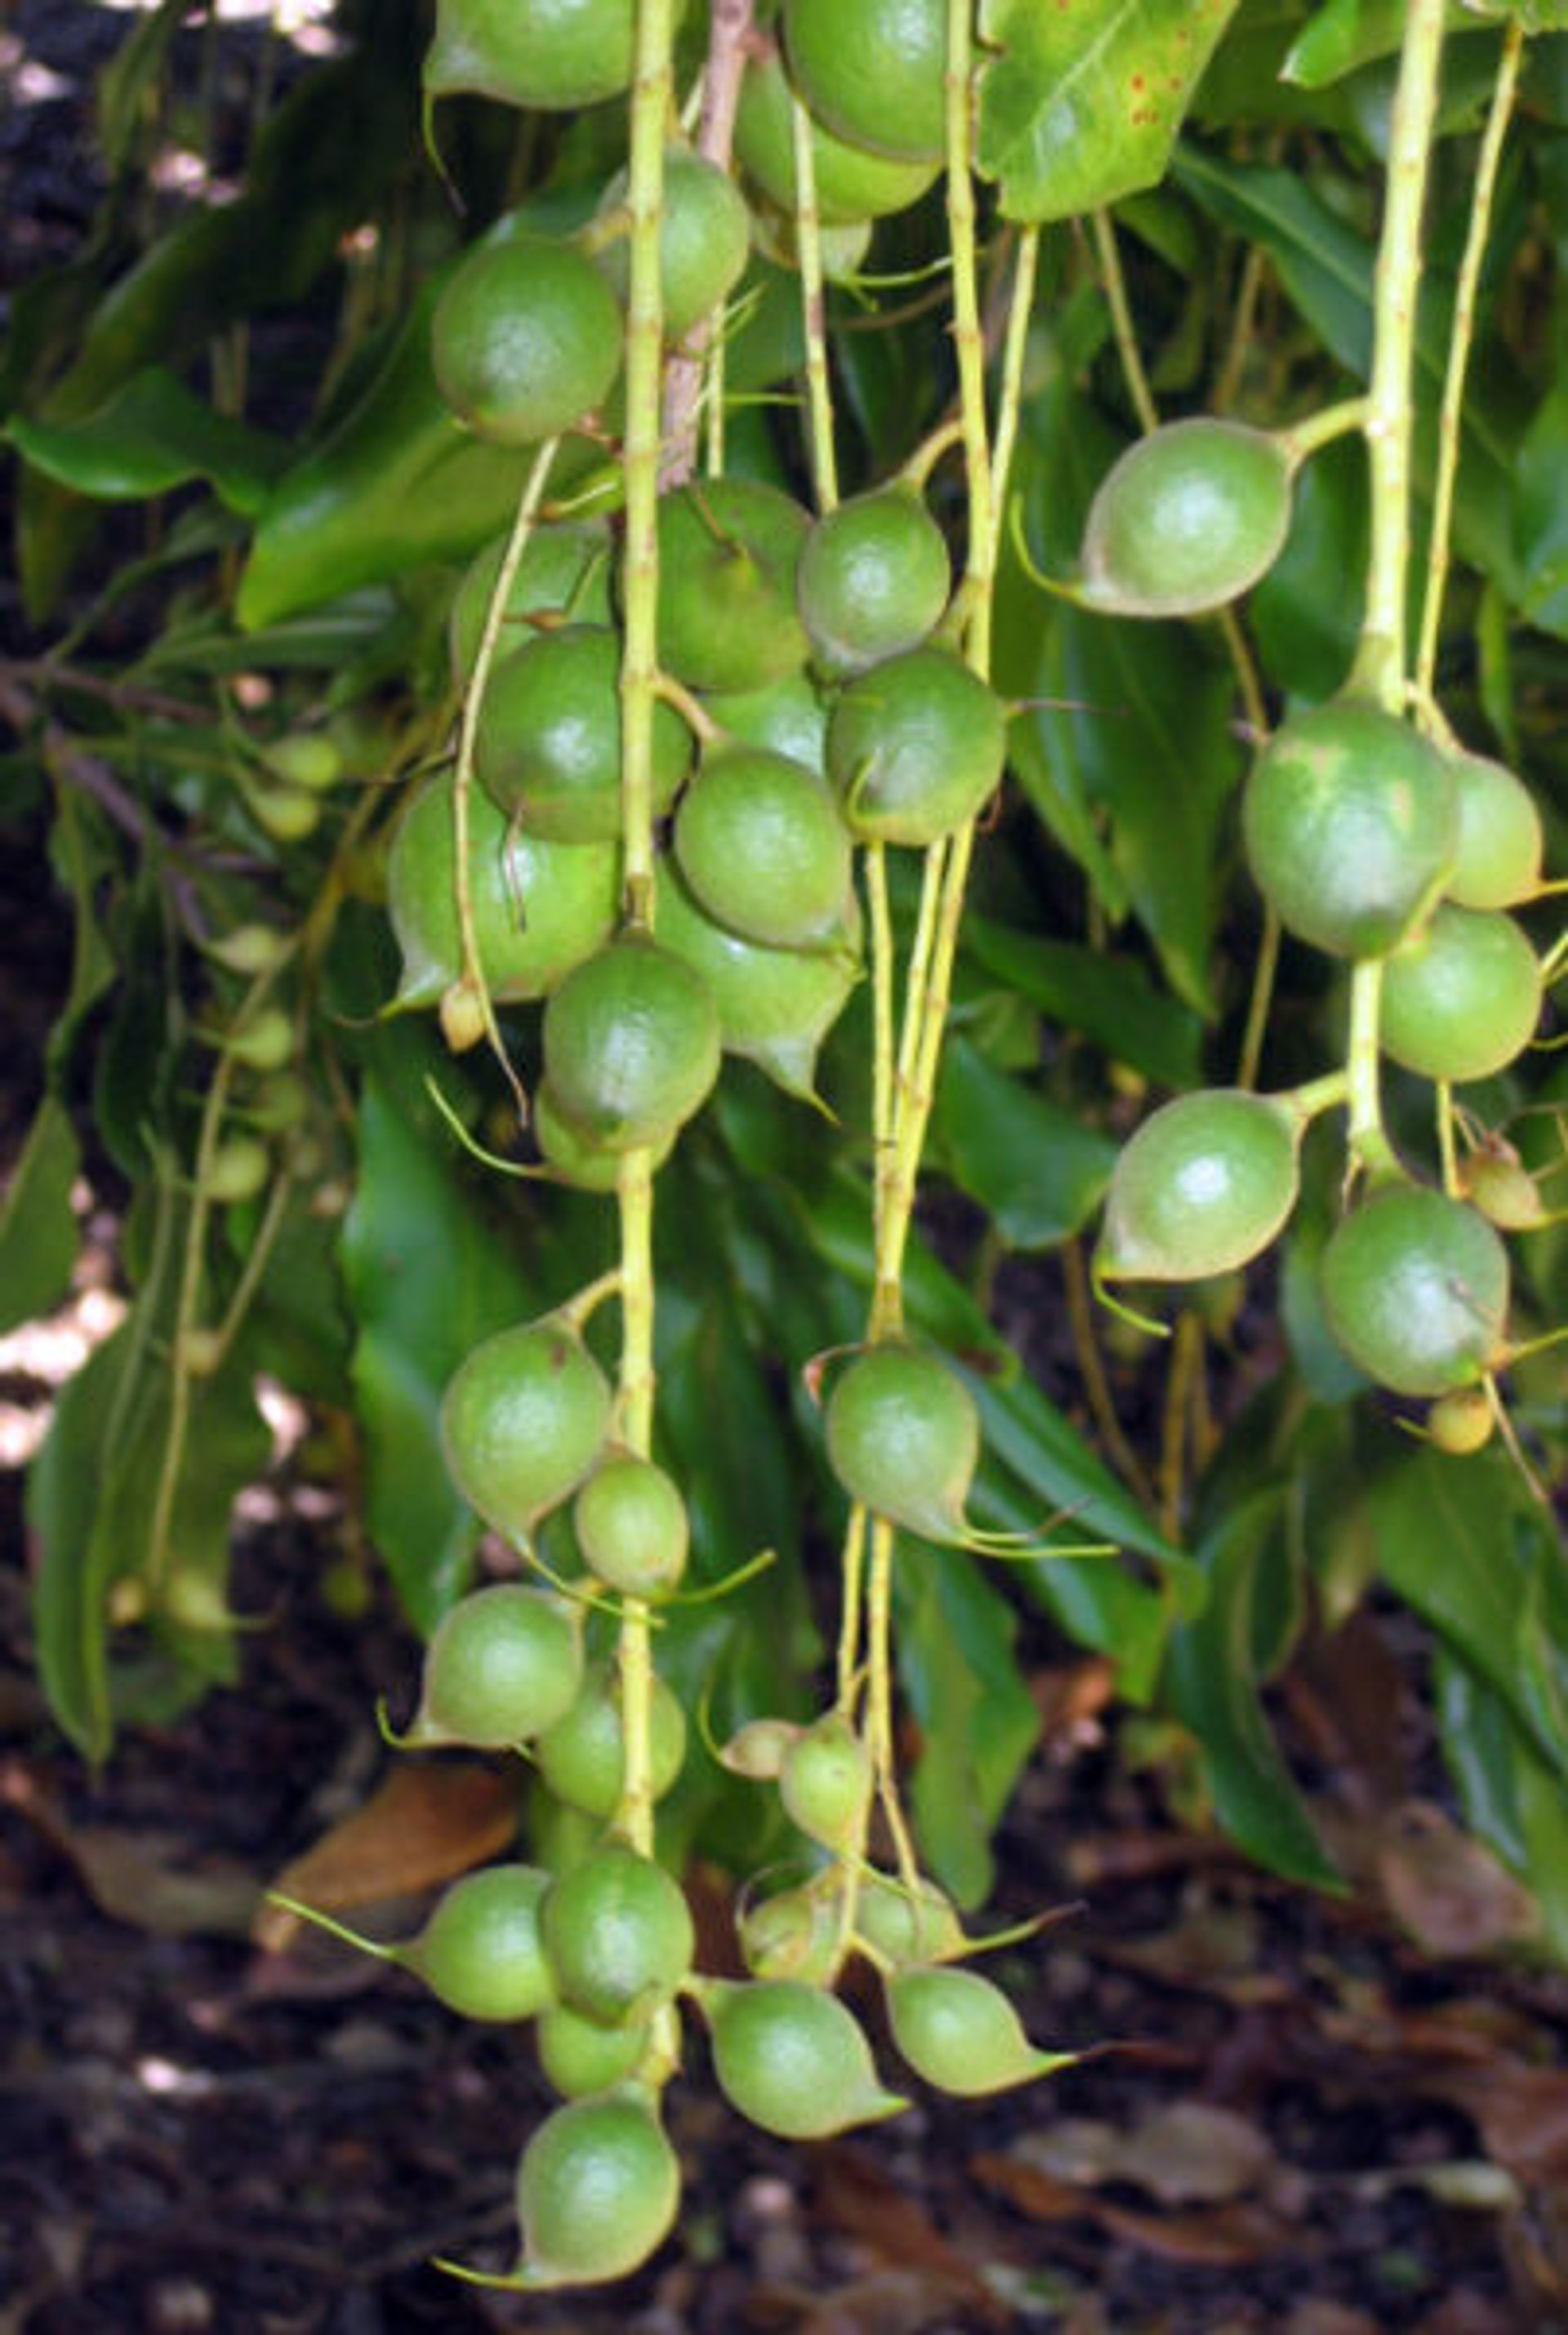 Macadamia Nuts in New Zealand - Best Season 2020